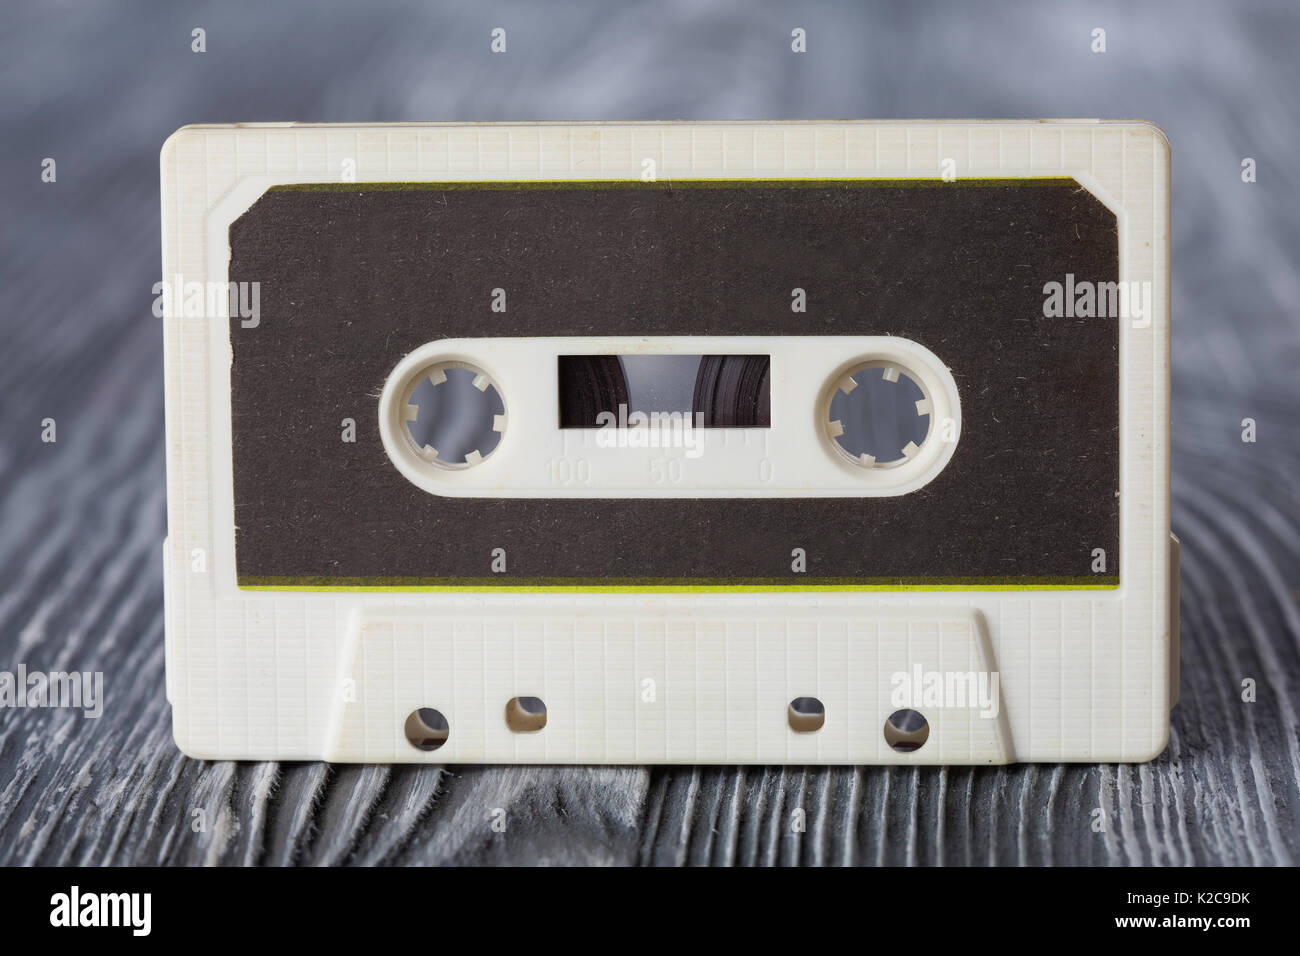 Vintage compact cassette with magnetic tape recording format for audio and playback. gray wooden background. Soft focus. macro view - Stock Image